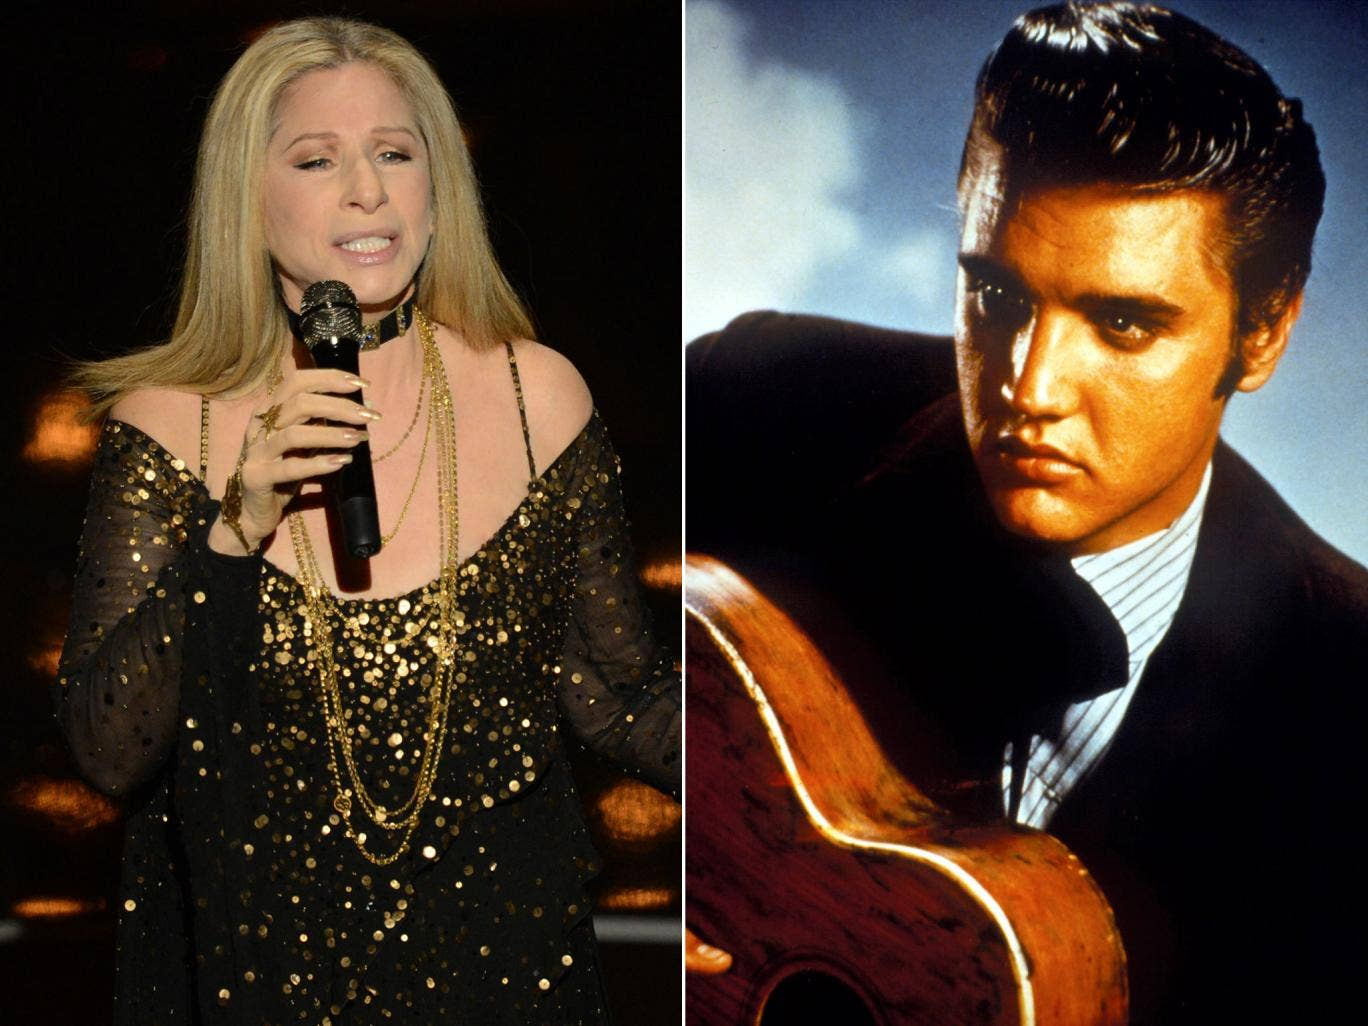 Elvis Presley will duet with Barbra Streisand from beyond the grave